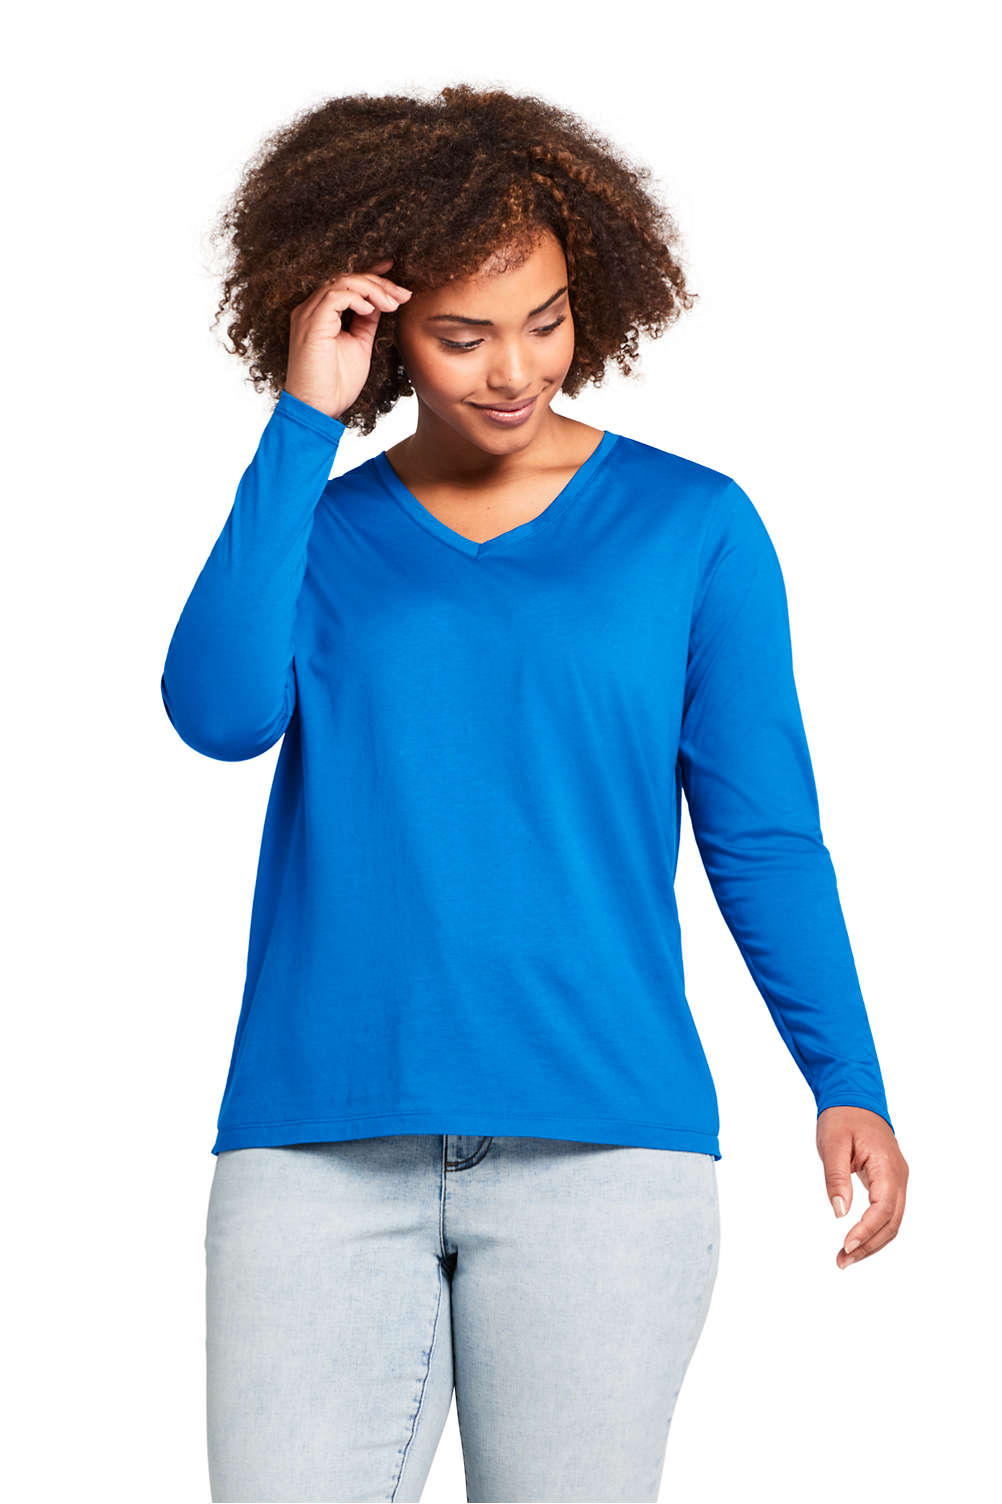 003d3b10913e Women's Plus Size Relaxed Fit Supima Cotton V-neck Long Sleeve T-shirt from  Lands' End